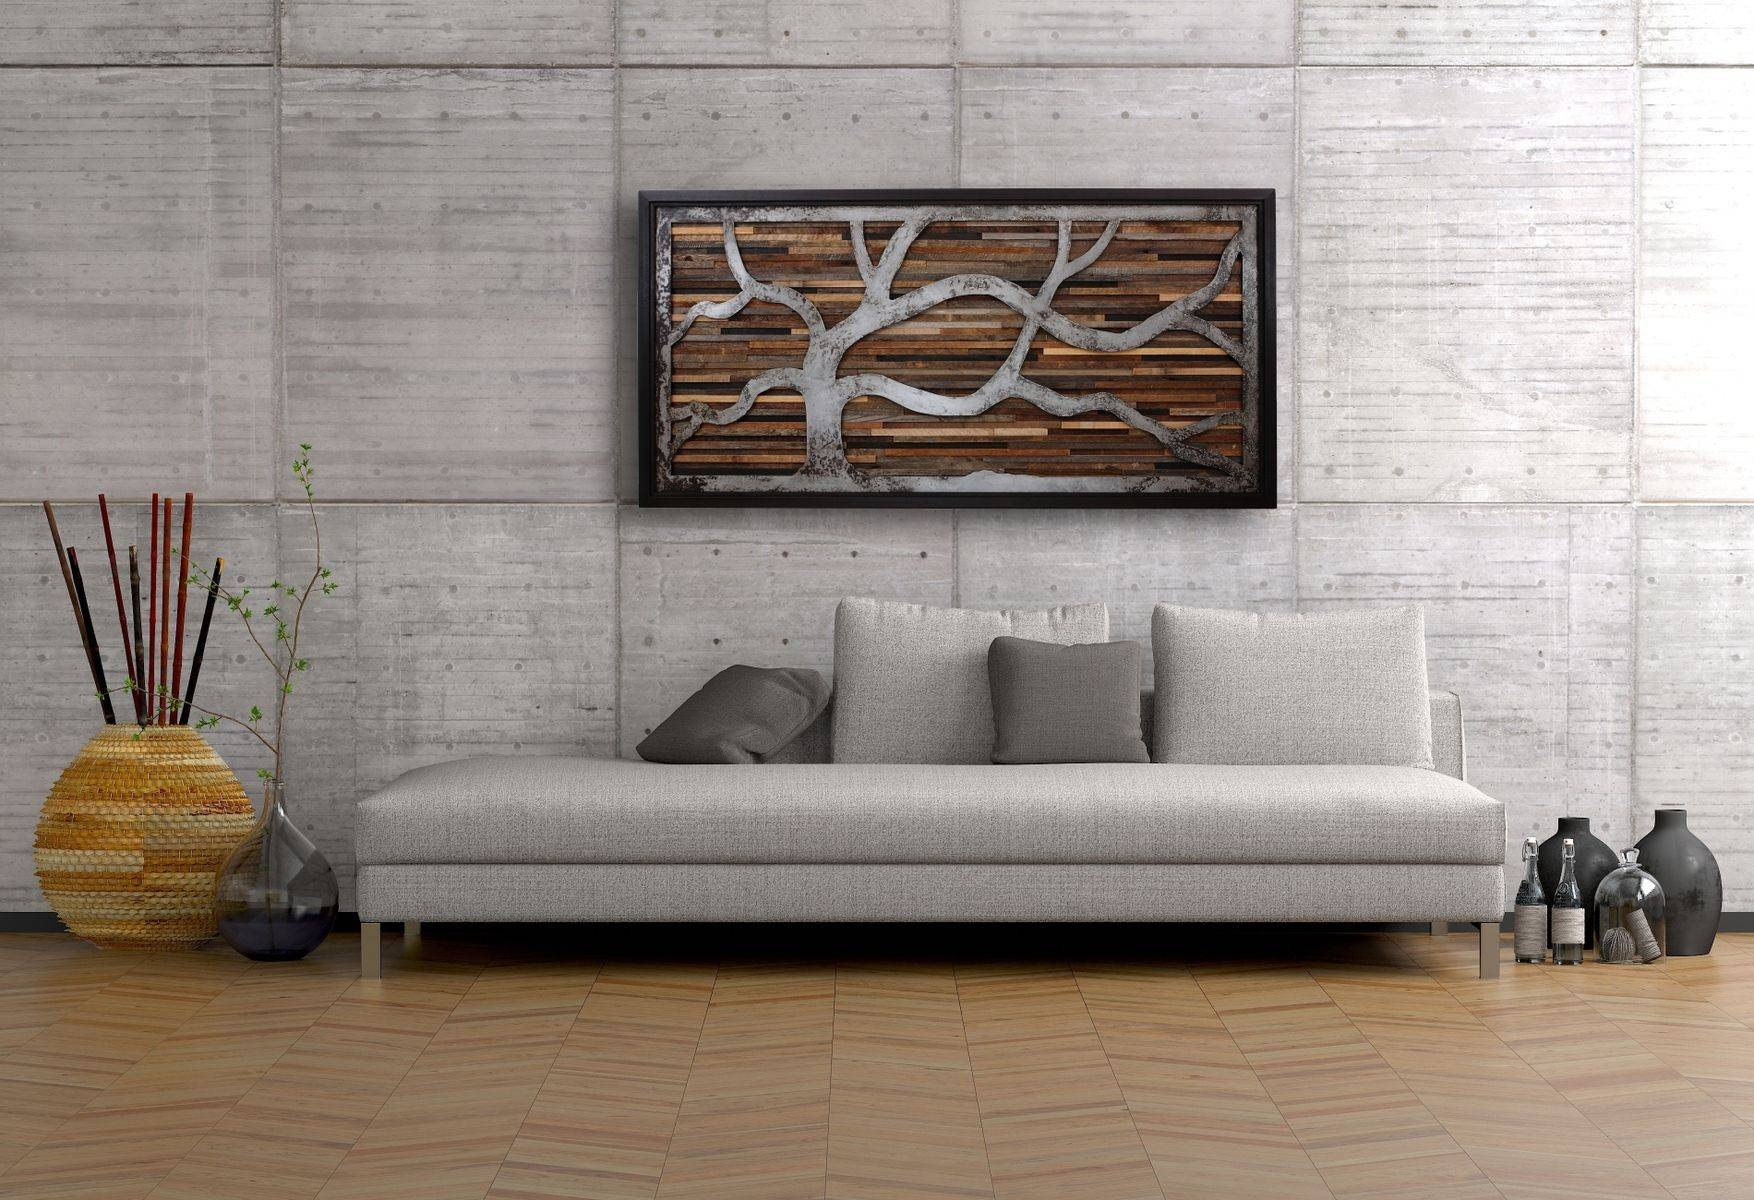 Handmade Reclaimed Wood Wall Art Made Of Old Barnwood And Rustic With Regard To Most Recently Released Wall Art On Wood (View 6 of 20)